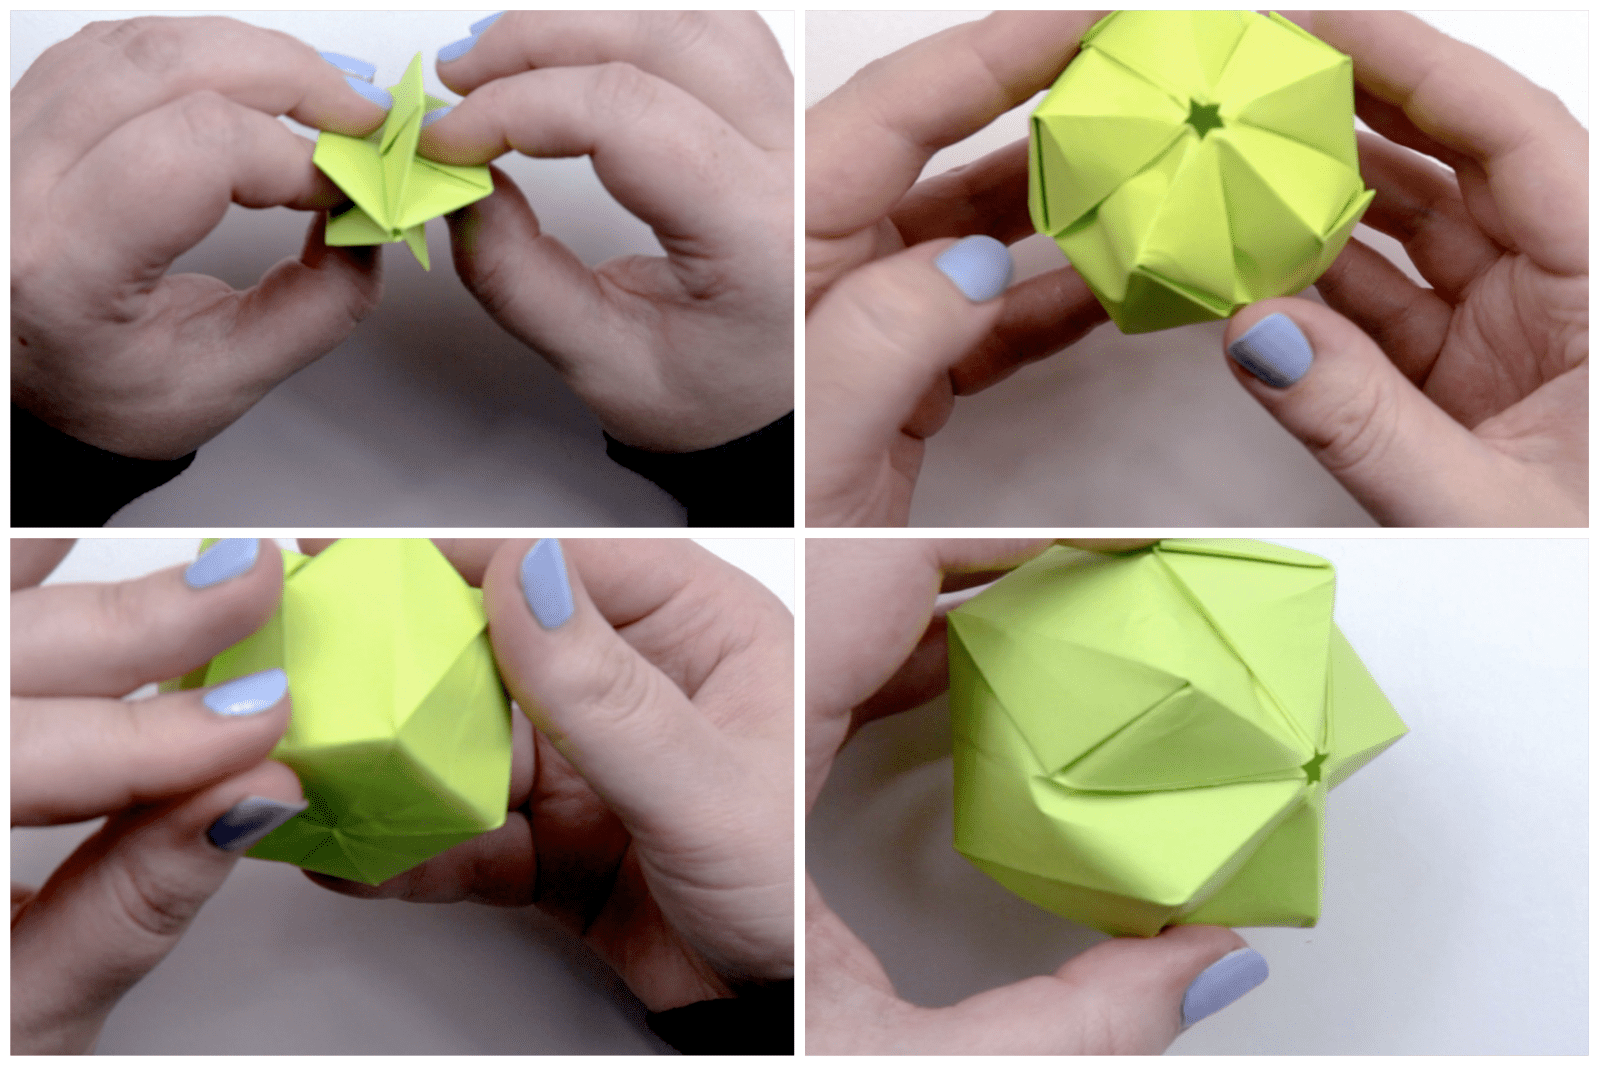 Shaping the paper into an apple